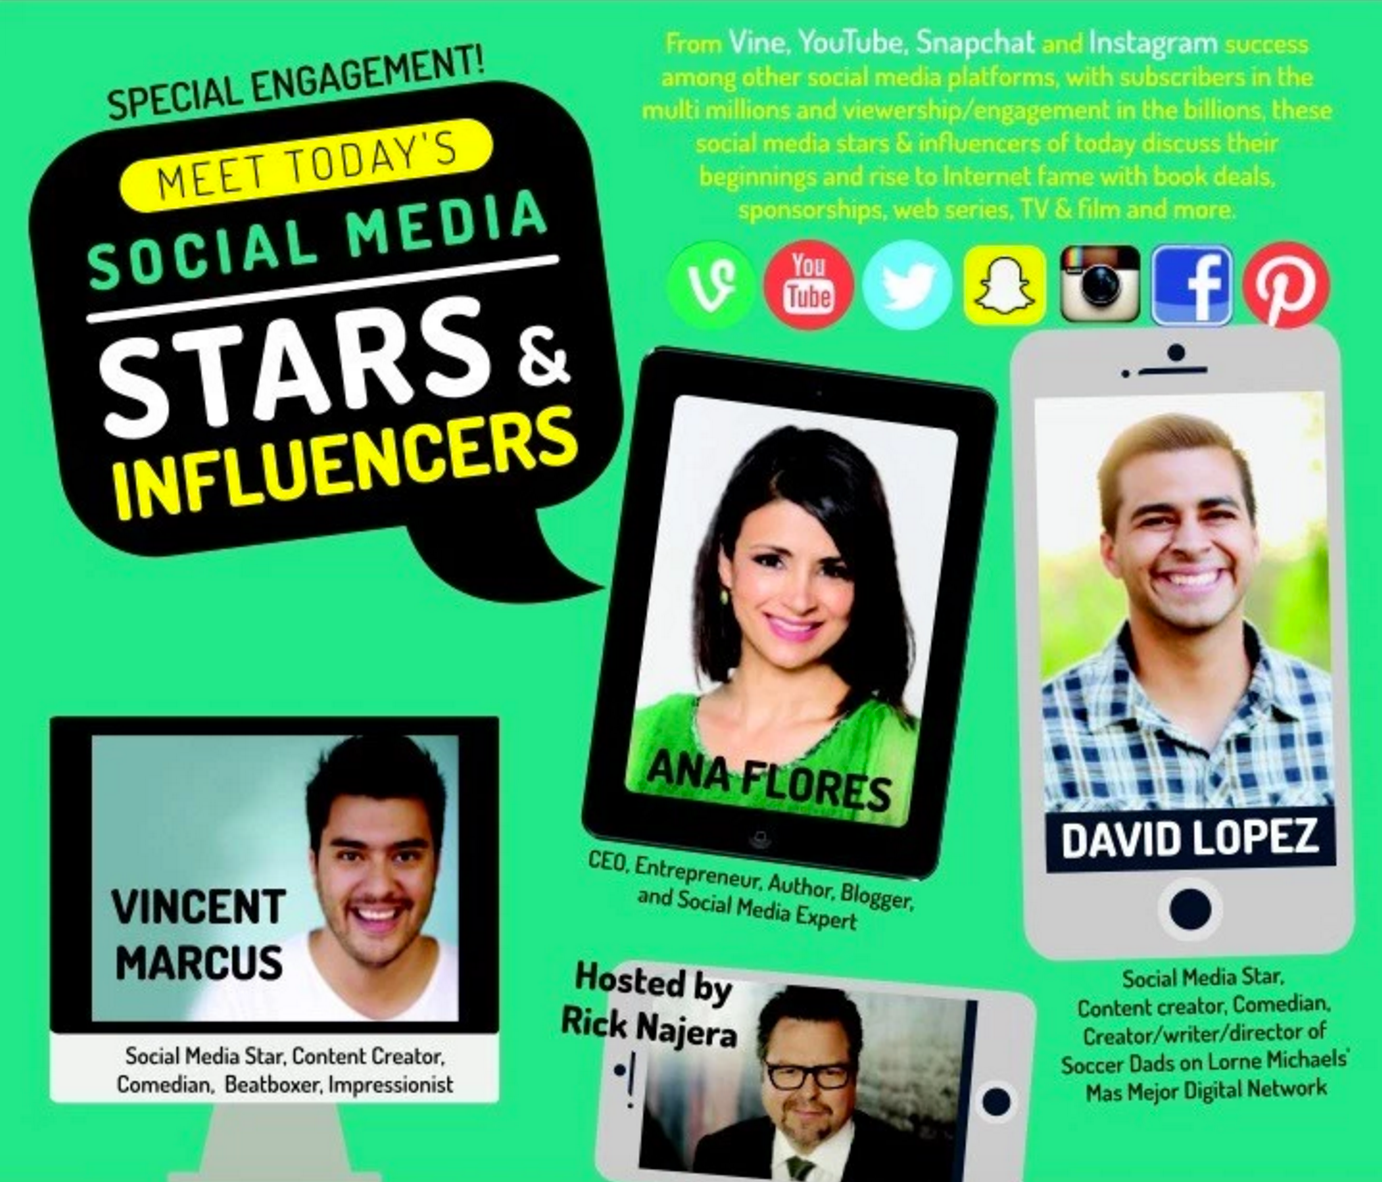 RICK NAJERA TO HOST LATINO THOUGHT MAKERS ALL-STAR SOCIAL MEDIA PANEL AT OXNARD COLLEGE PERFORMING ARTS CENTER APRIL 13